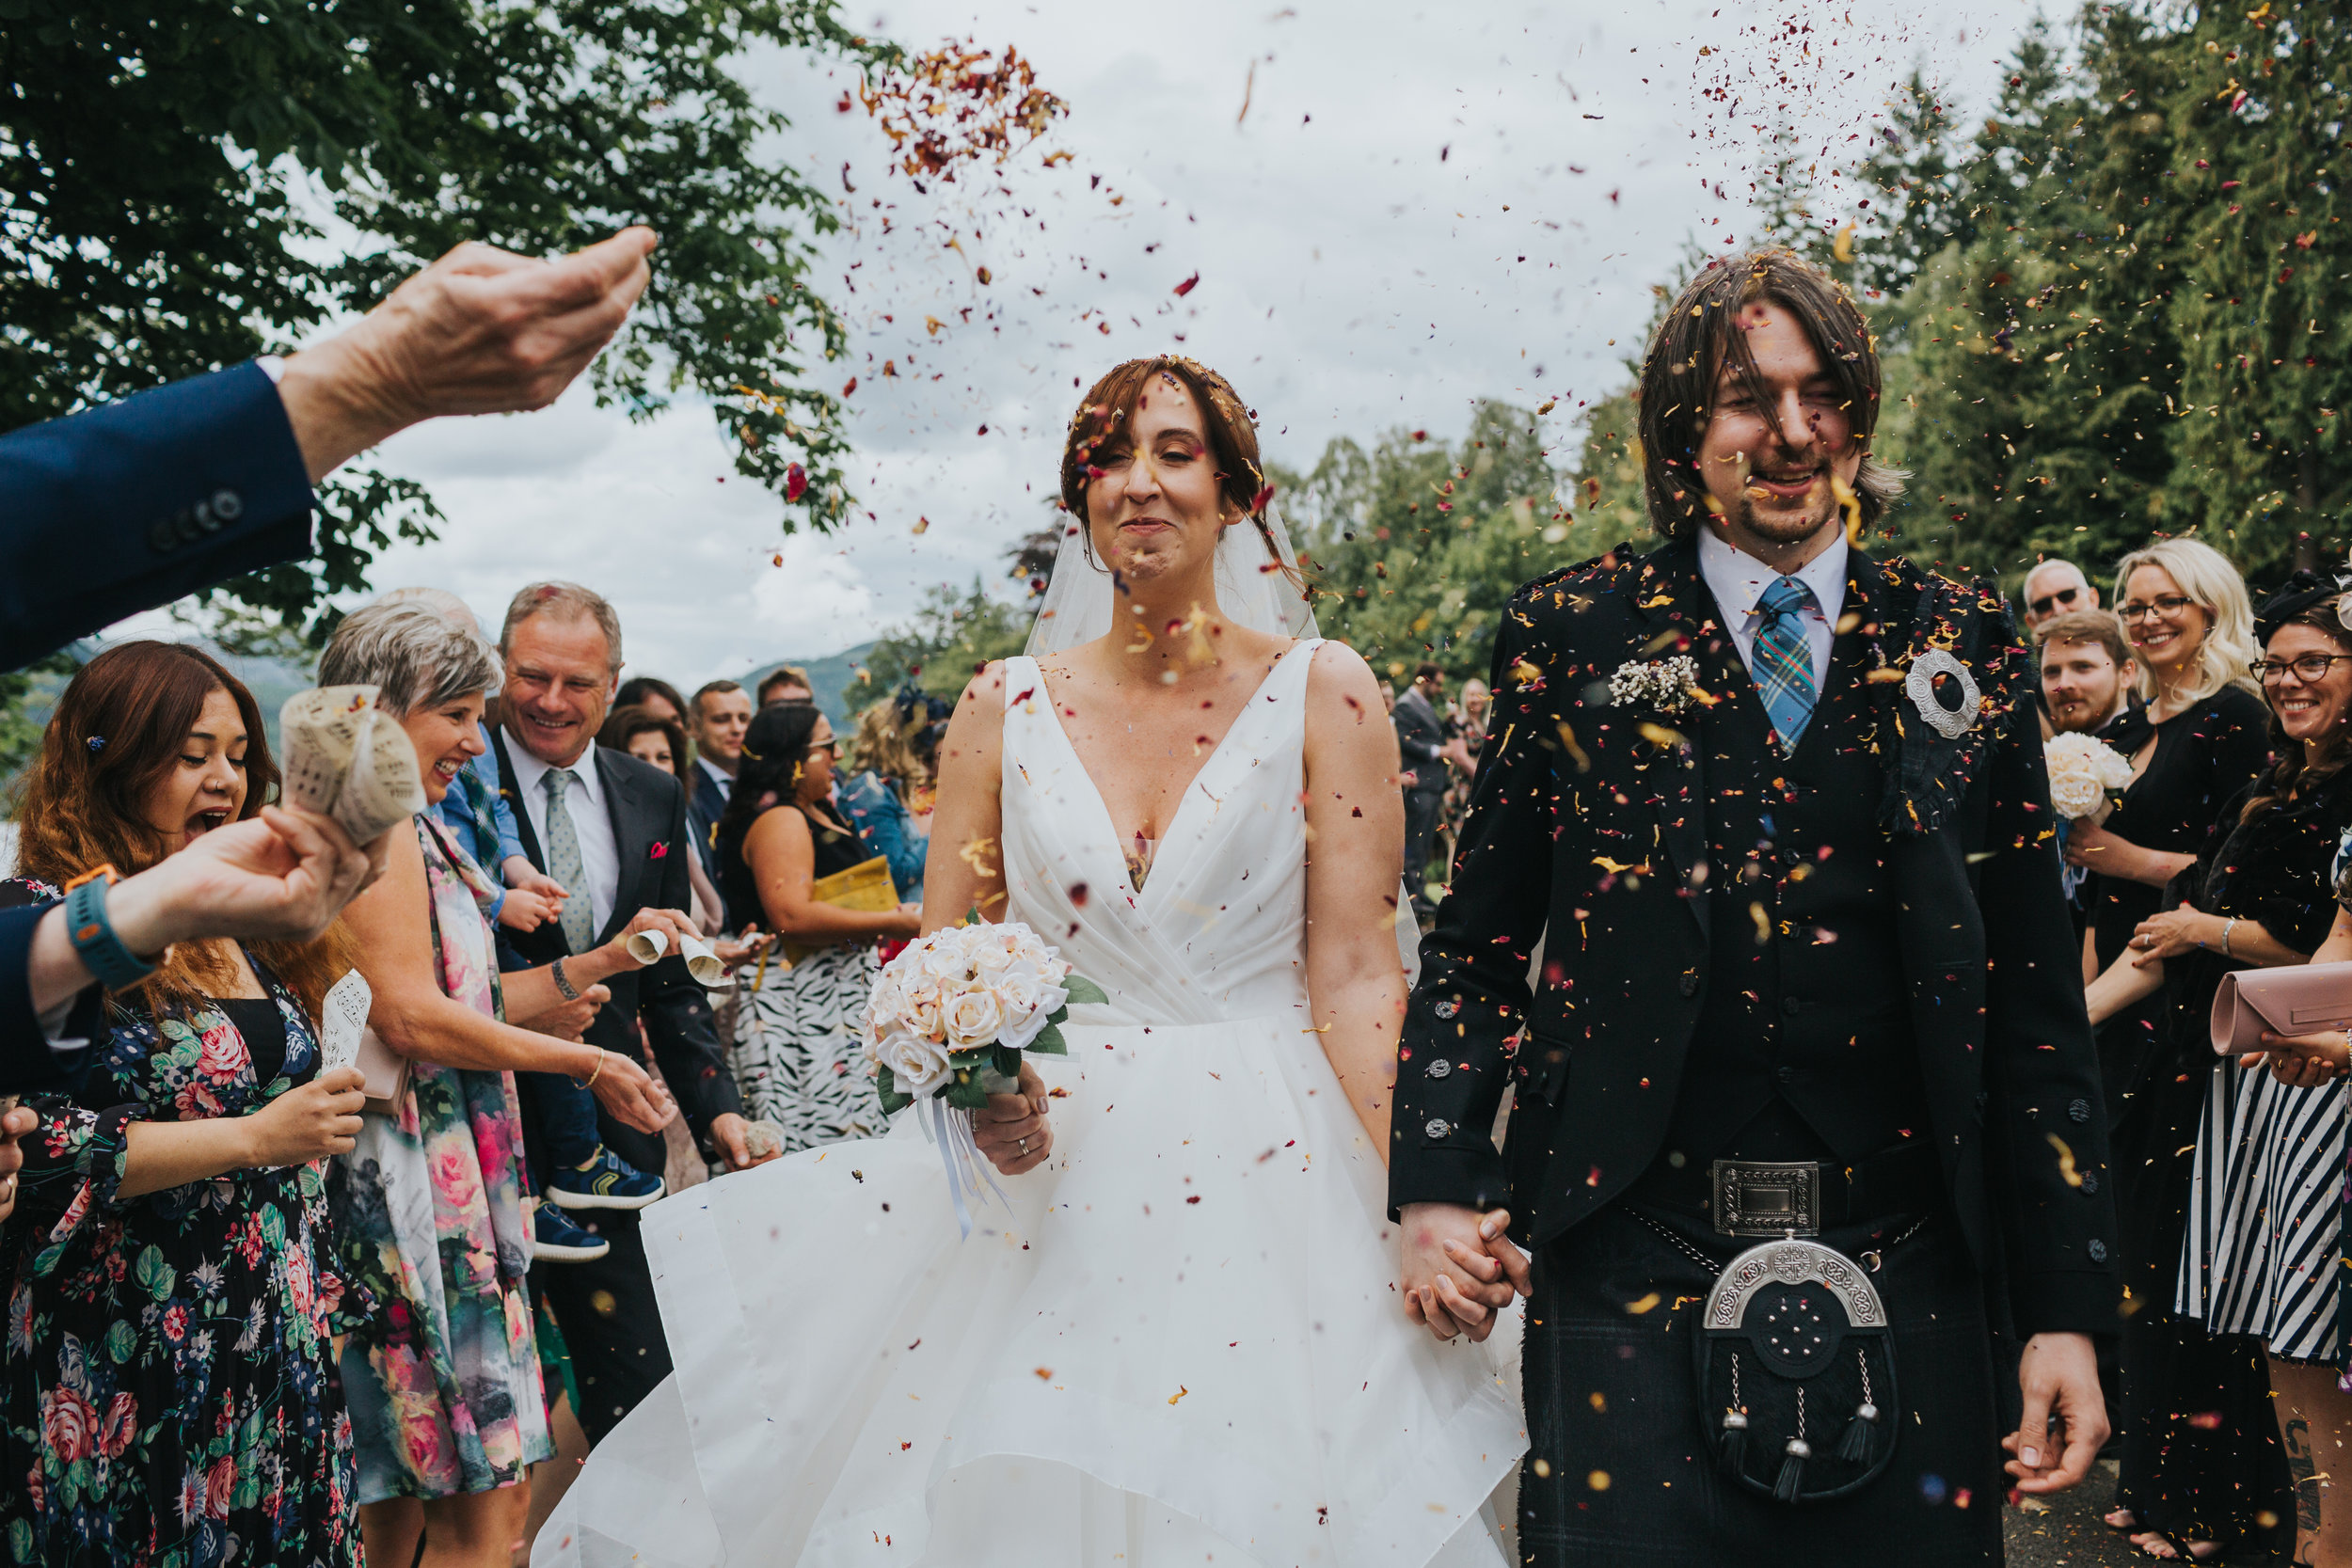 Couple get confetti in their face.